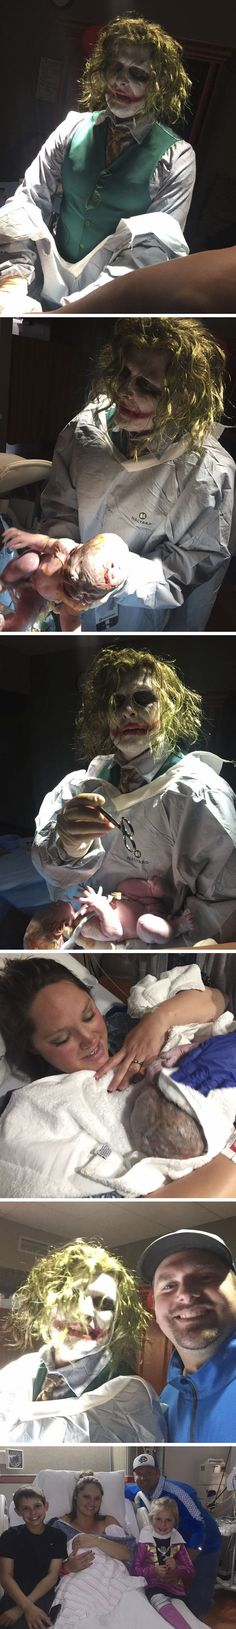 Doctor Dressed as The Joker Delivers a Baby on Halloween